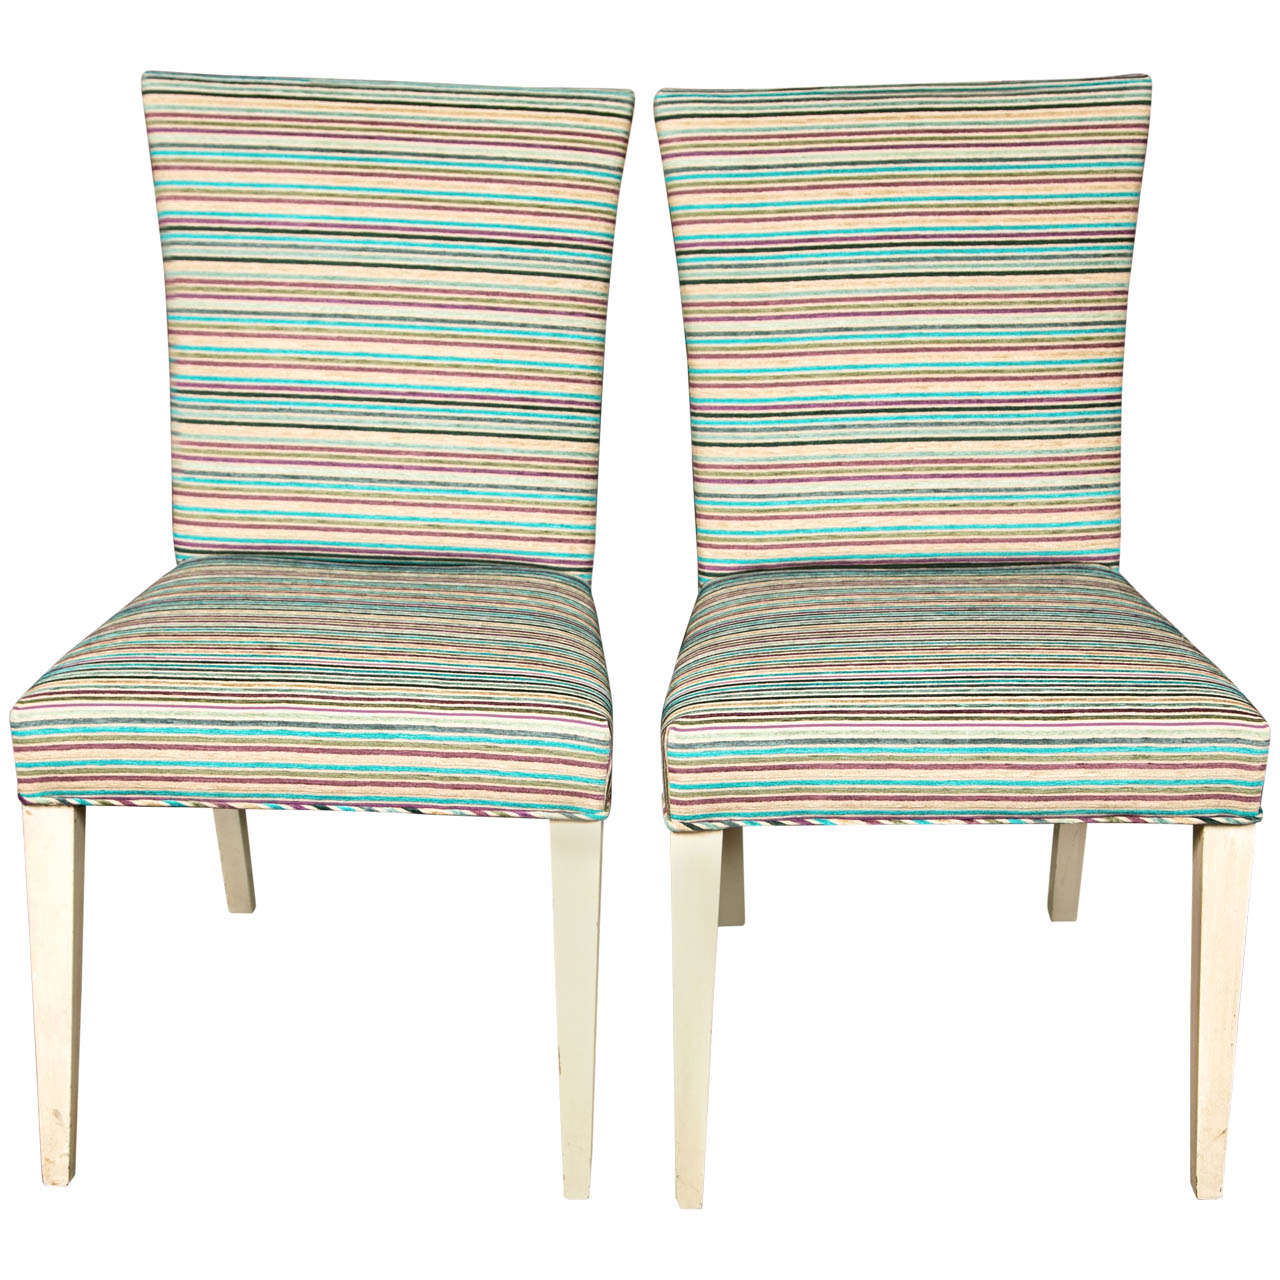 Pair of Mid-Century Modern Side Chairs 1